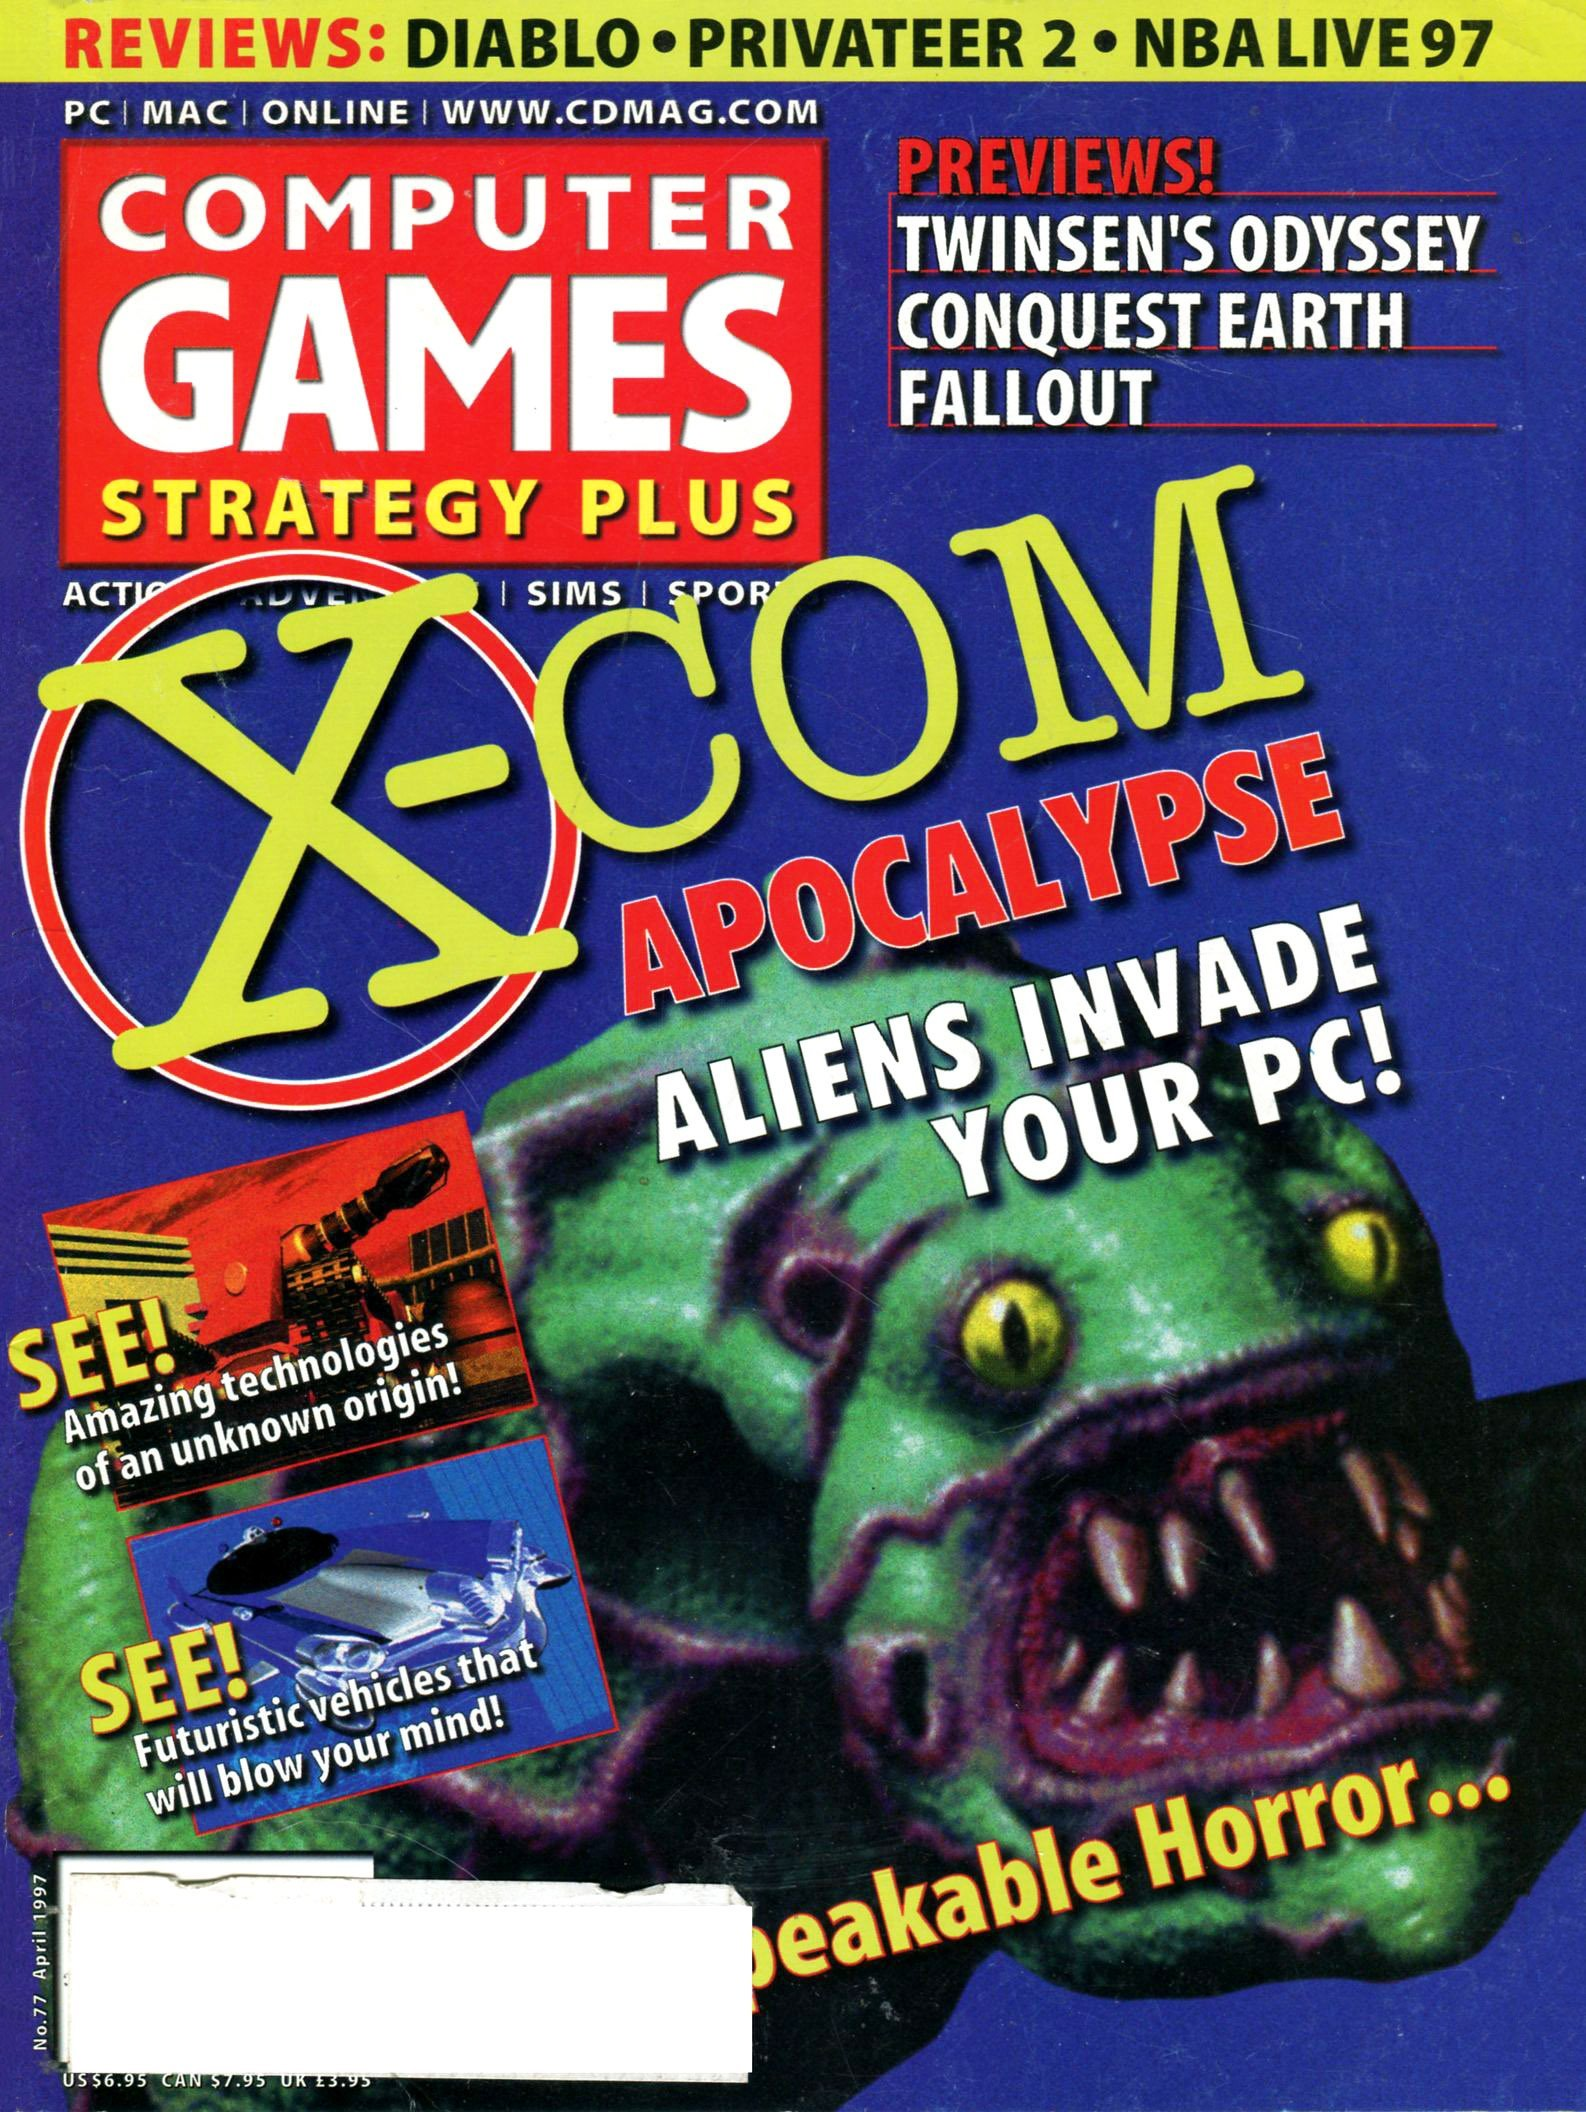 Computer Games Strategy Plus Issue 077 (April 1997)